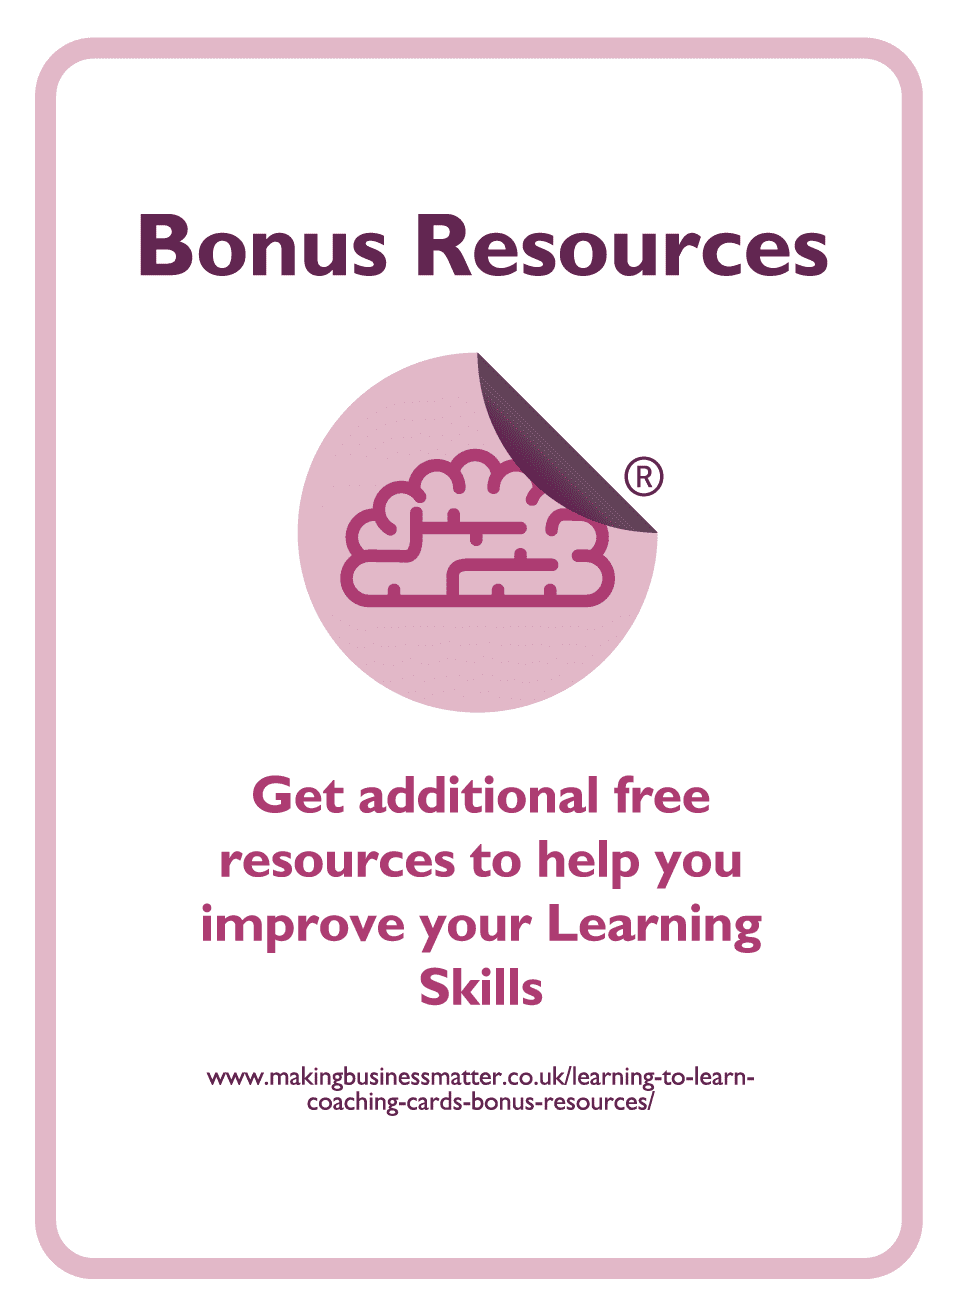 Learning to Learn coaching card titled Bonus Resources